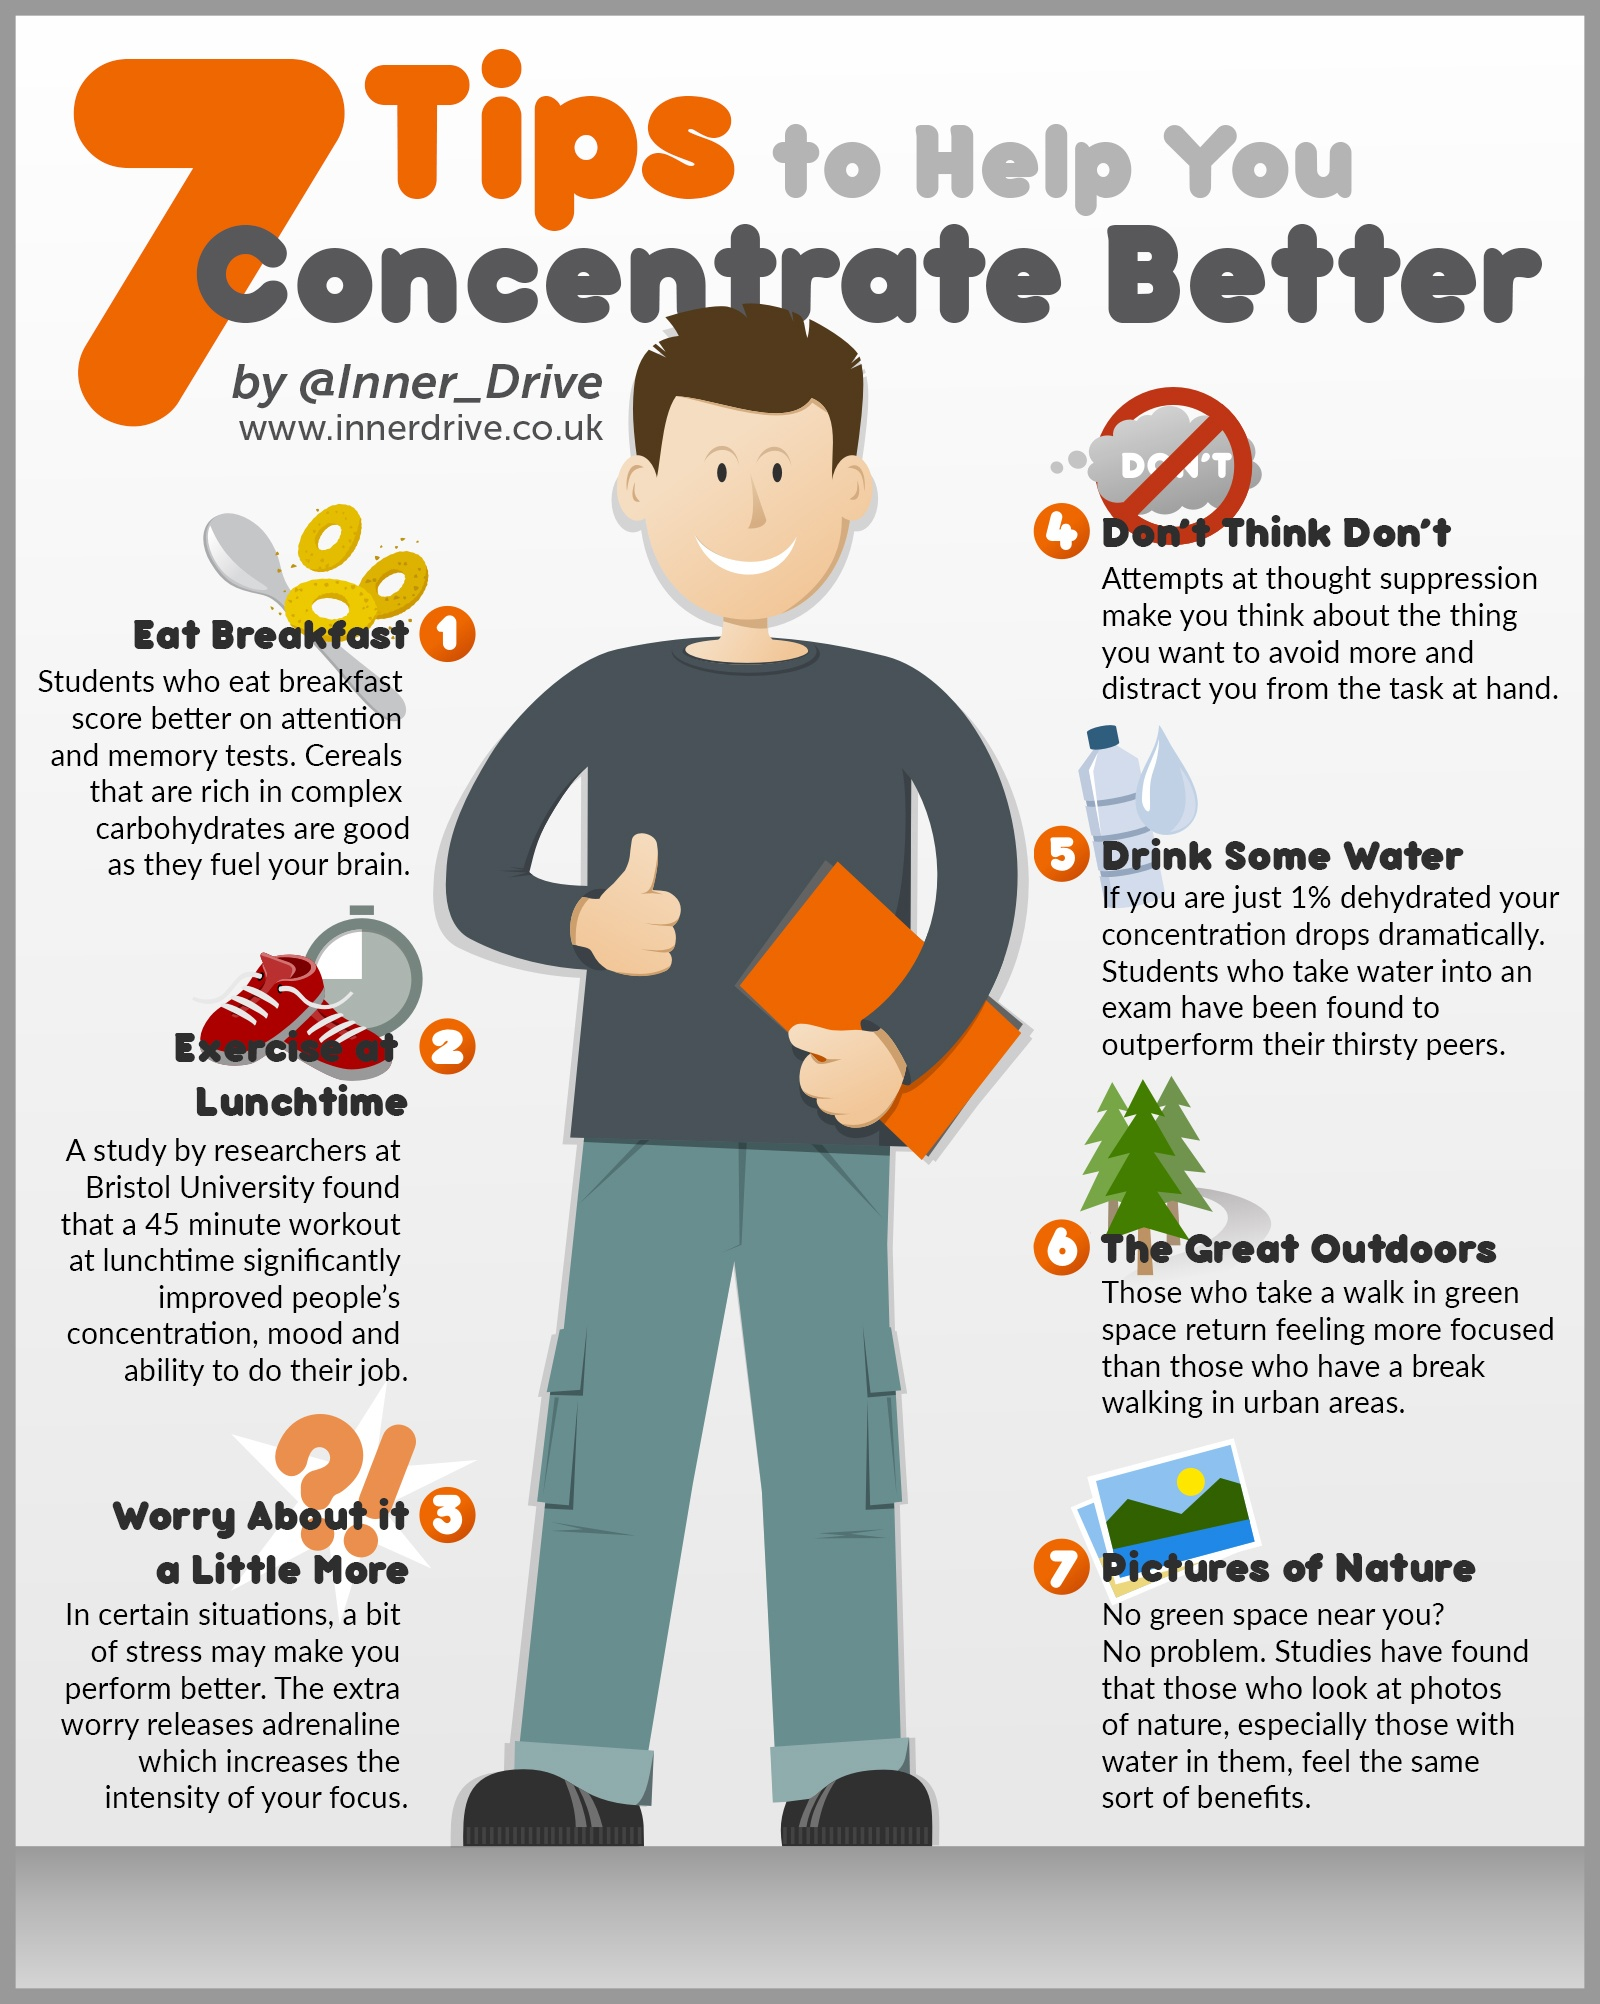 7 Tips to Help You Concentrate Better